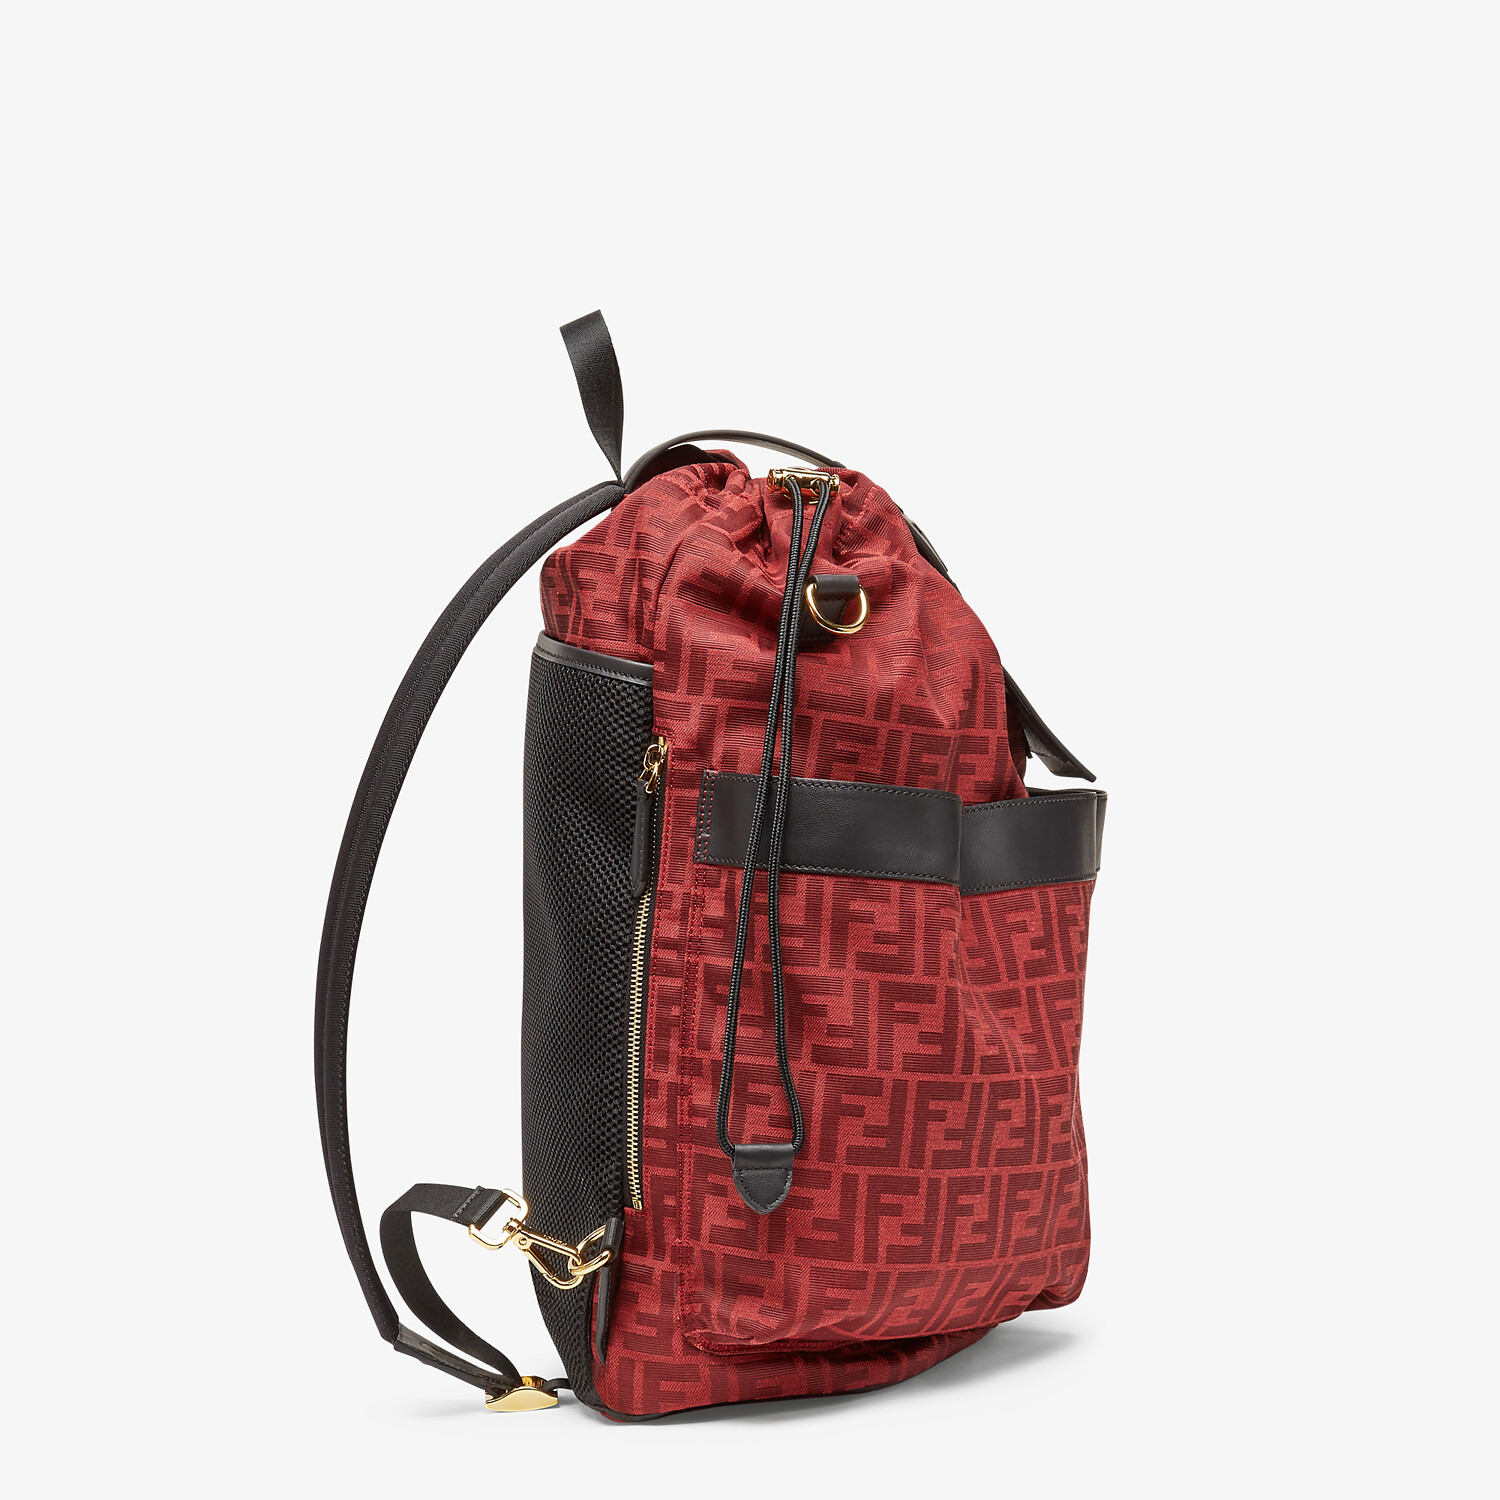 FENDI BACKPACK - Backpack from the Lunar New Year Limited Capsule Collection - view 2 detail